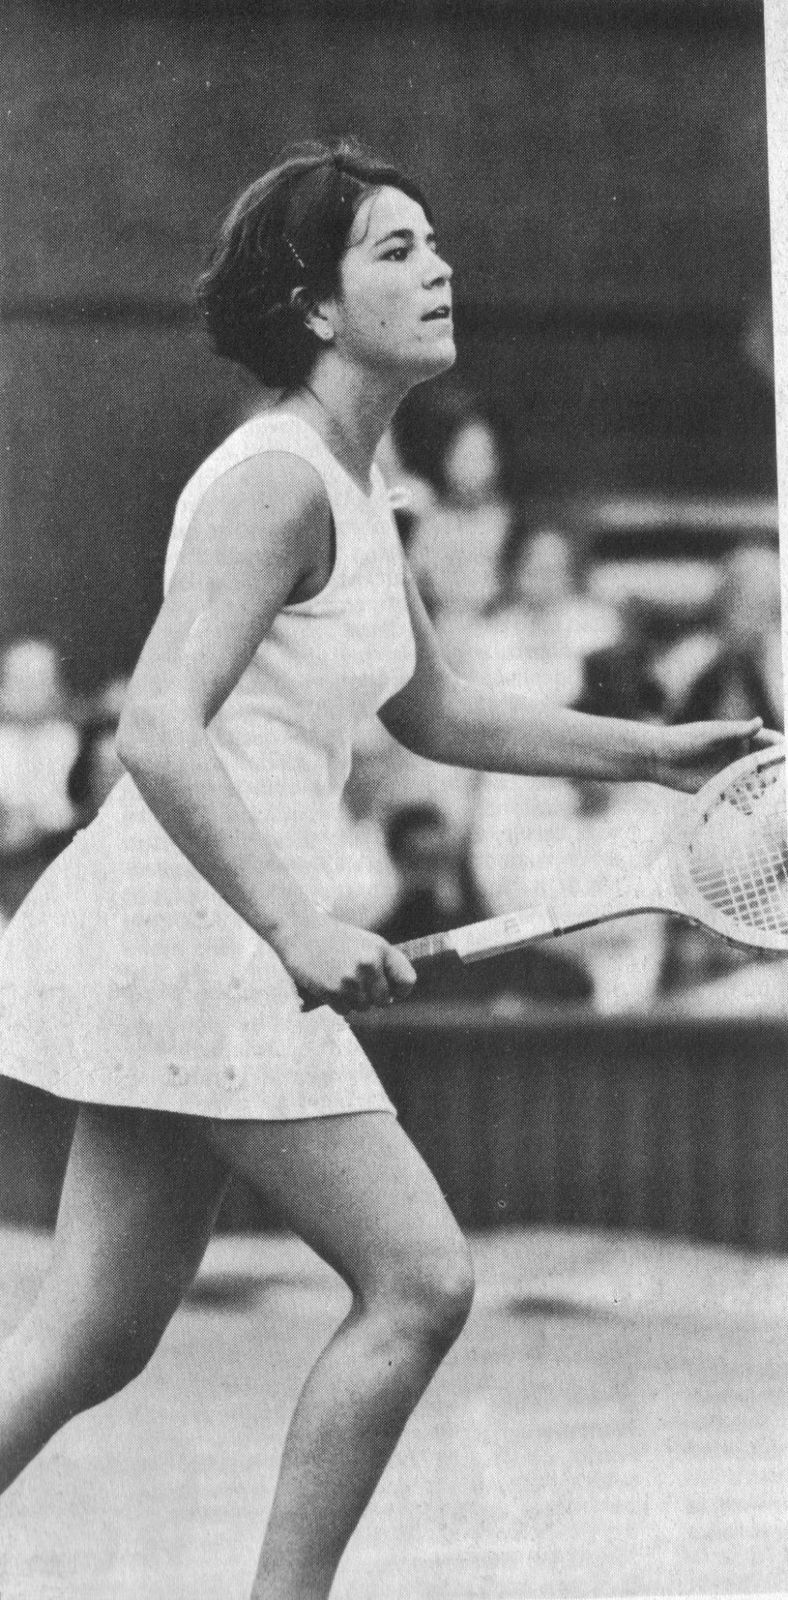 1975 Le blog des archives du tennis feminin